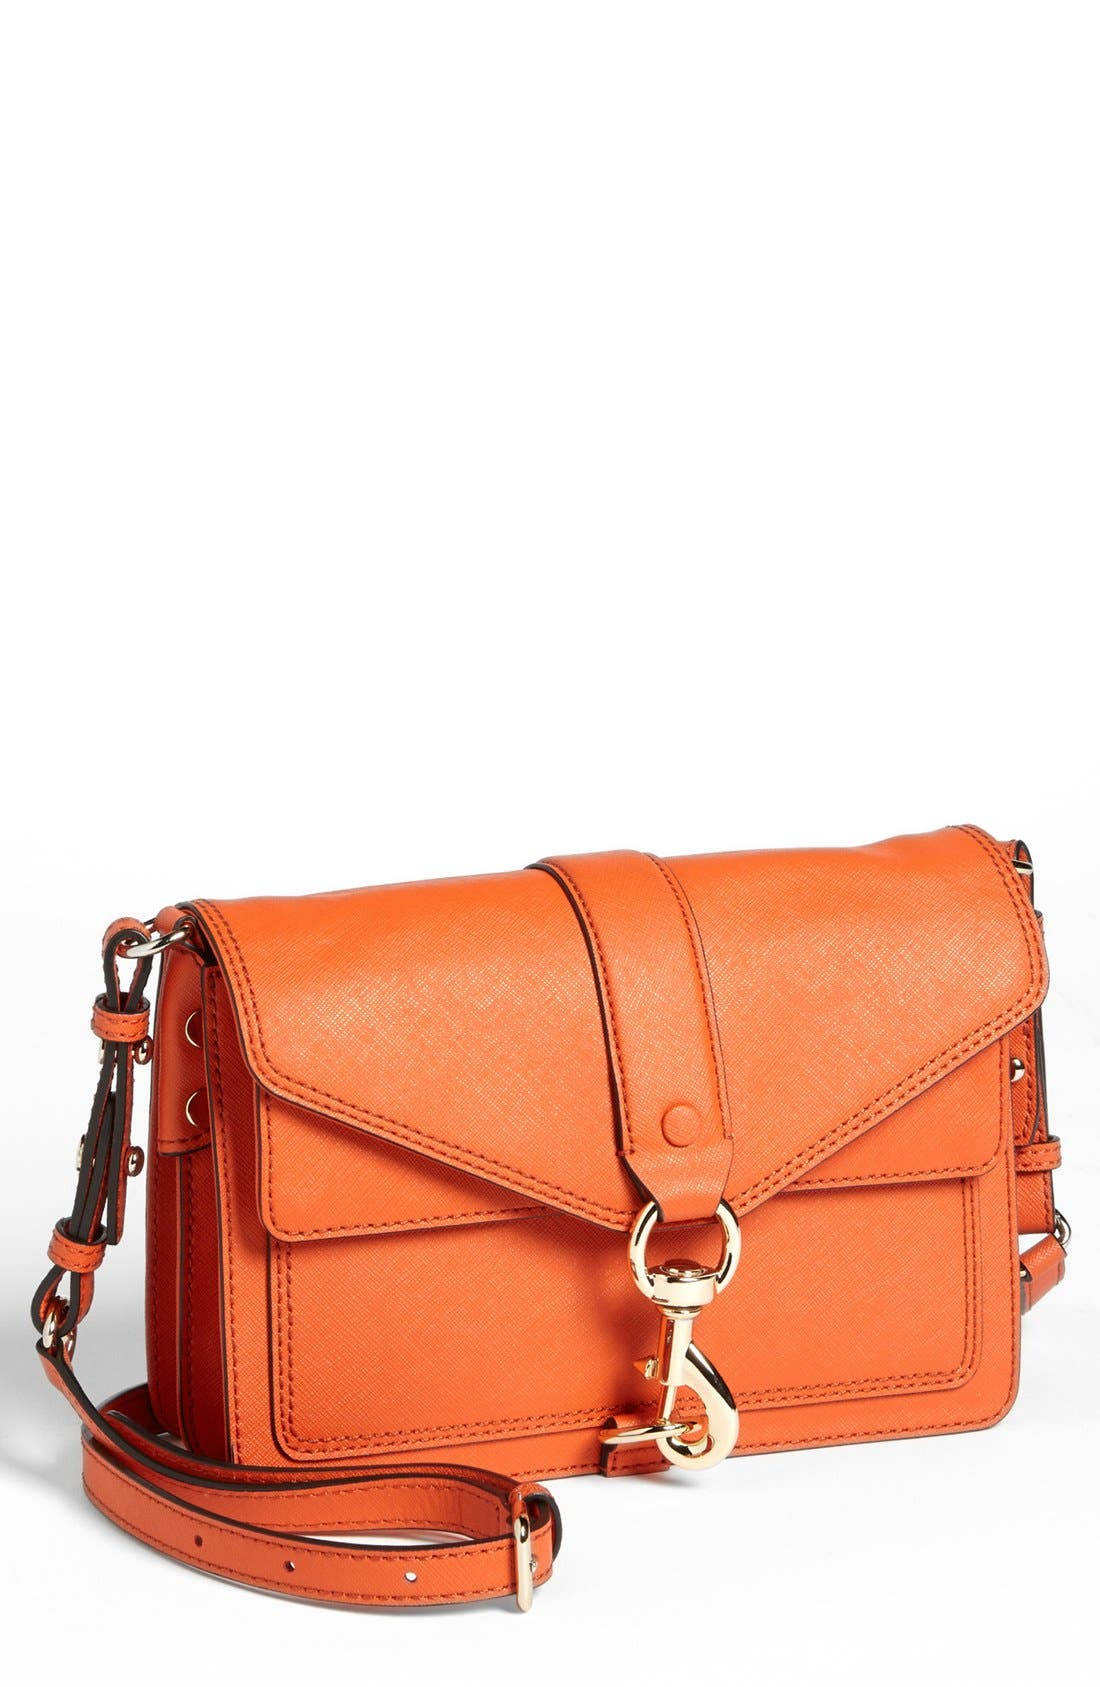 Main Image - Rebecca Minkoff 'Hudson Moto Mini' Crossbody Bag